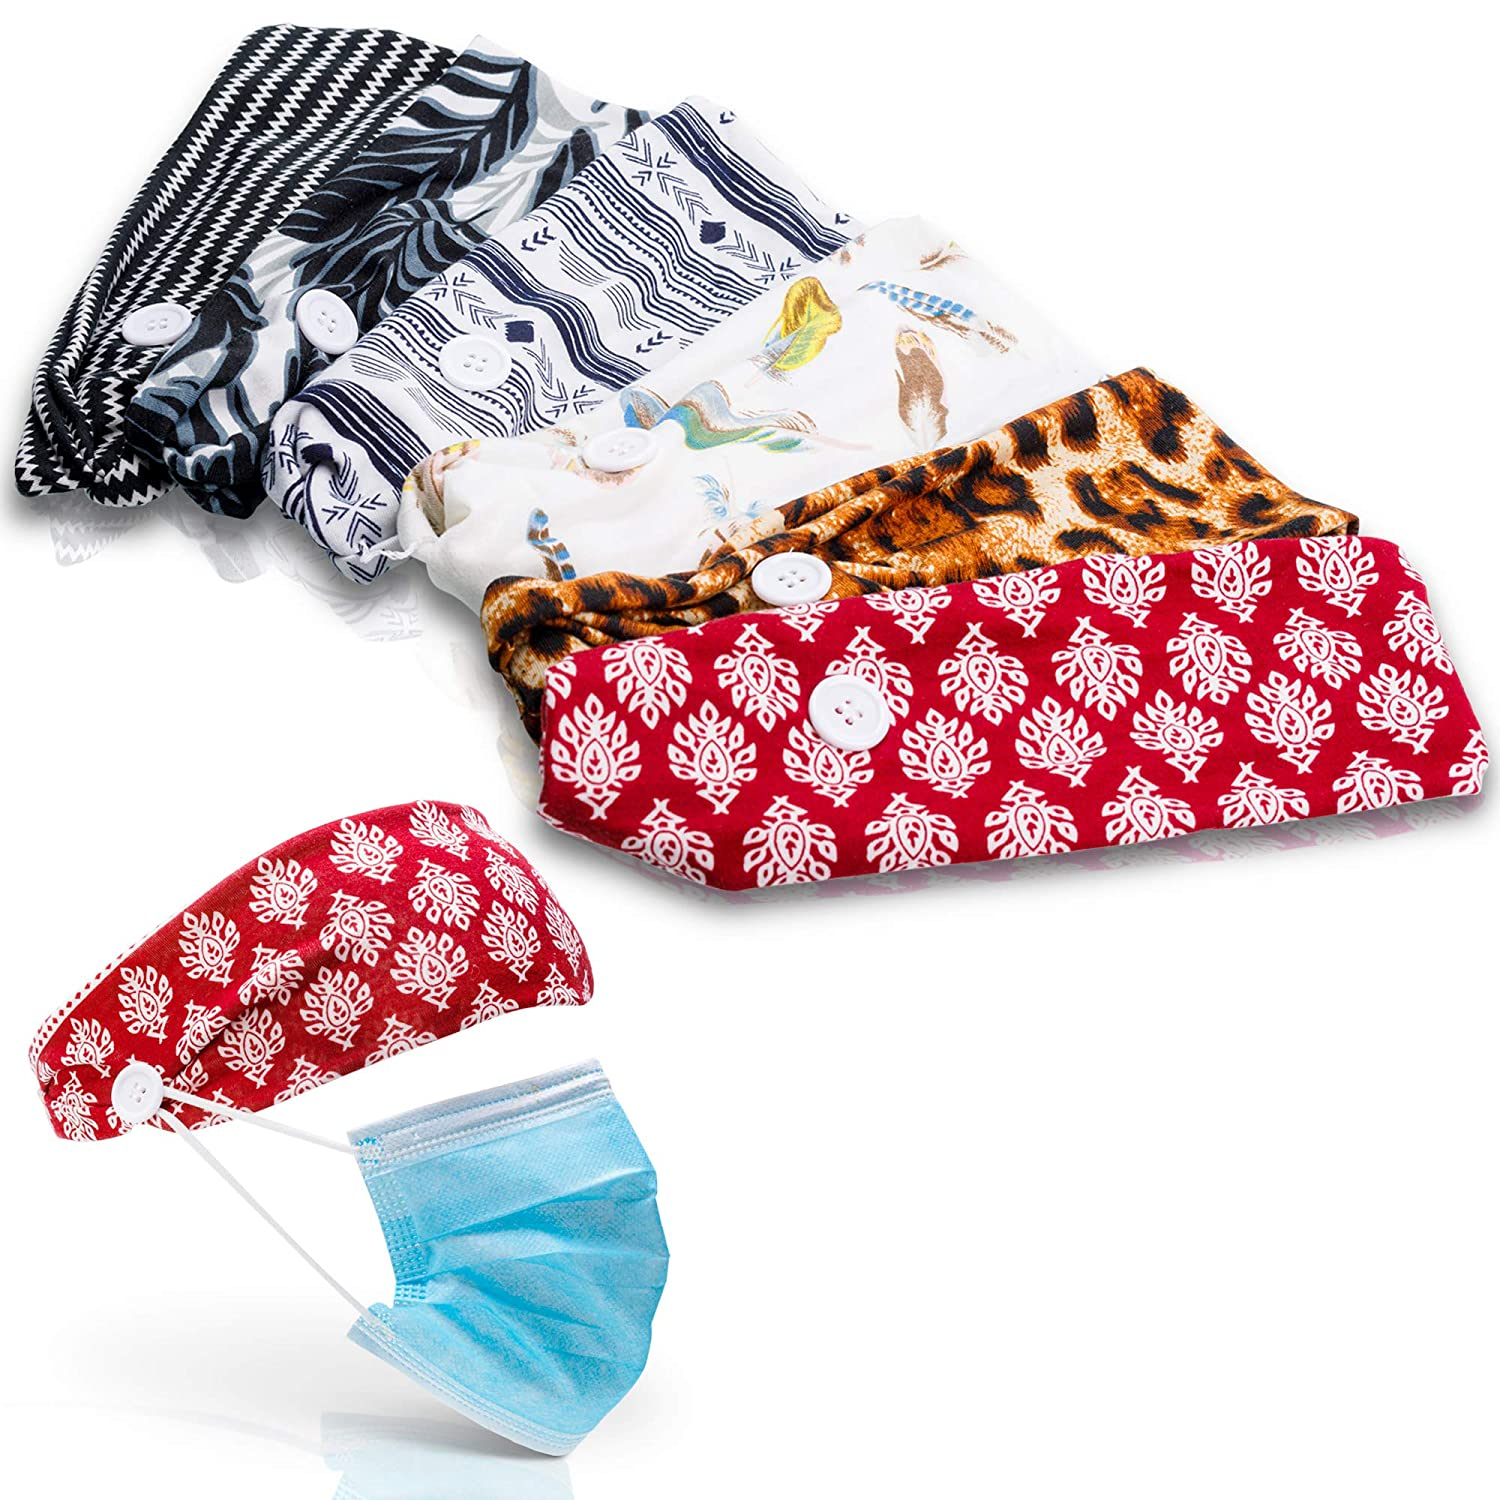 6 PACK BOHO headband with buttons for face mask practical and stylish for nurses, doctors, office environments, gym, yoga, sports, everyday fashion and comfort eliminate ear pain with style